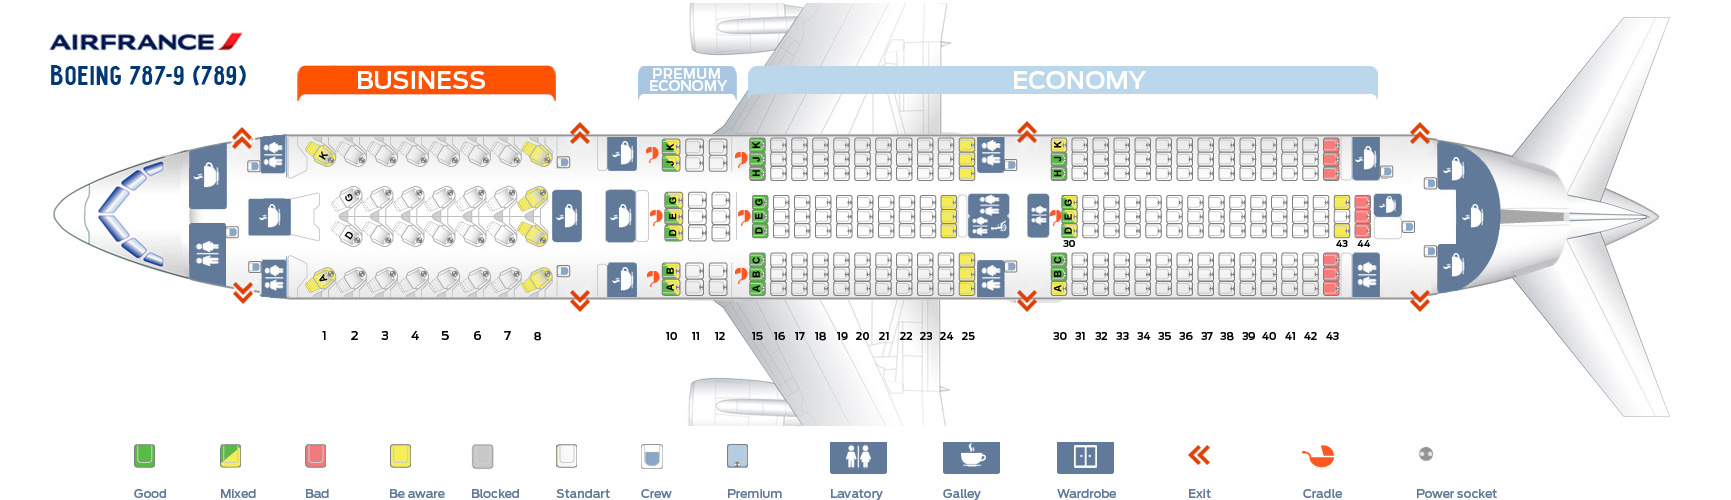 Seat Map Boeing 787-9 AirFrance